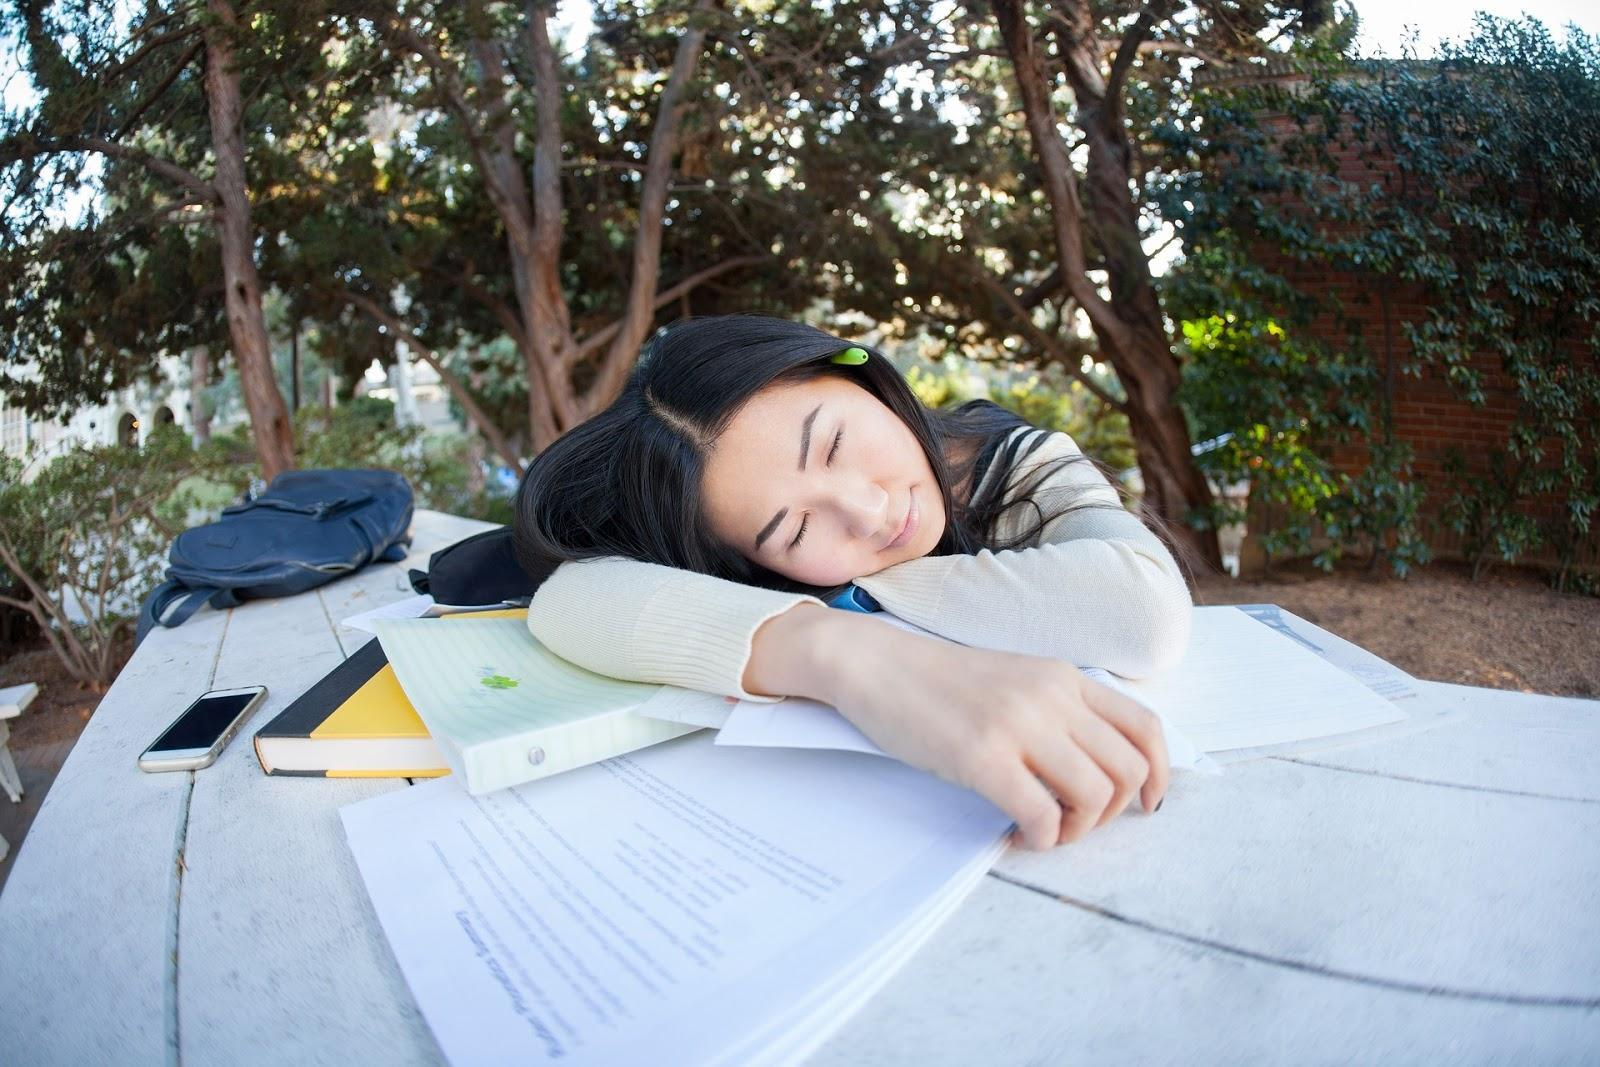 How Schools Can Promote Healthy Sleep Habits for Students